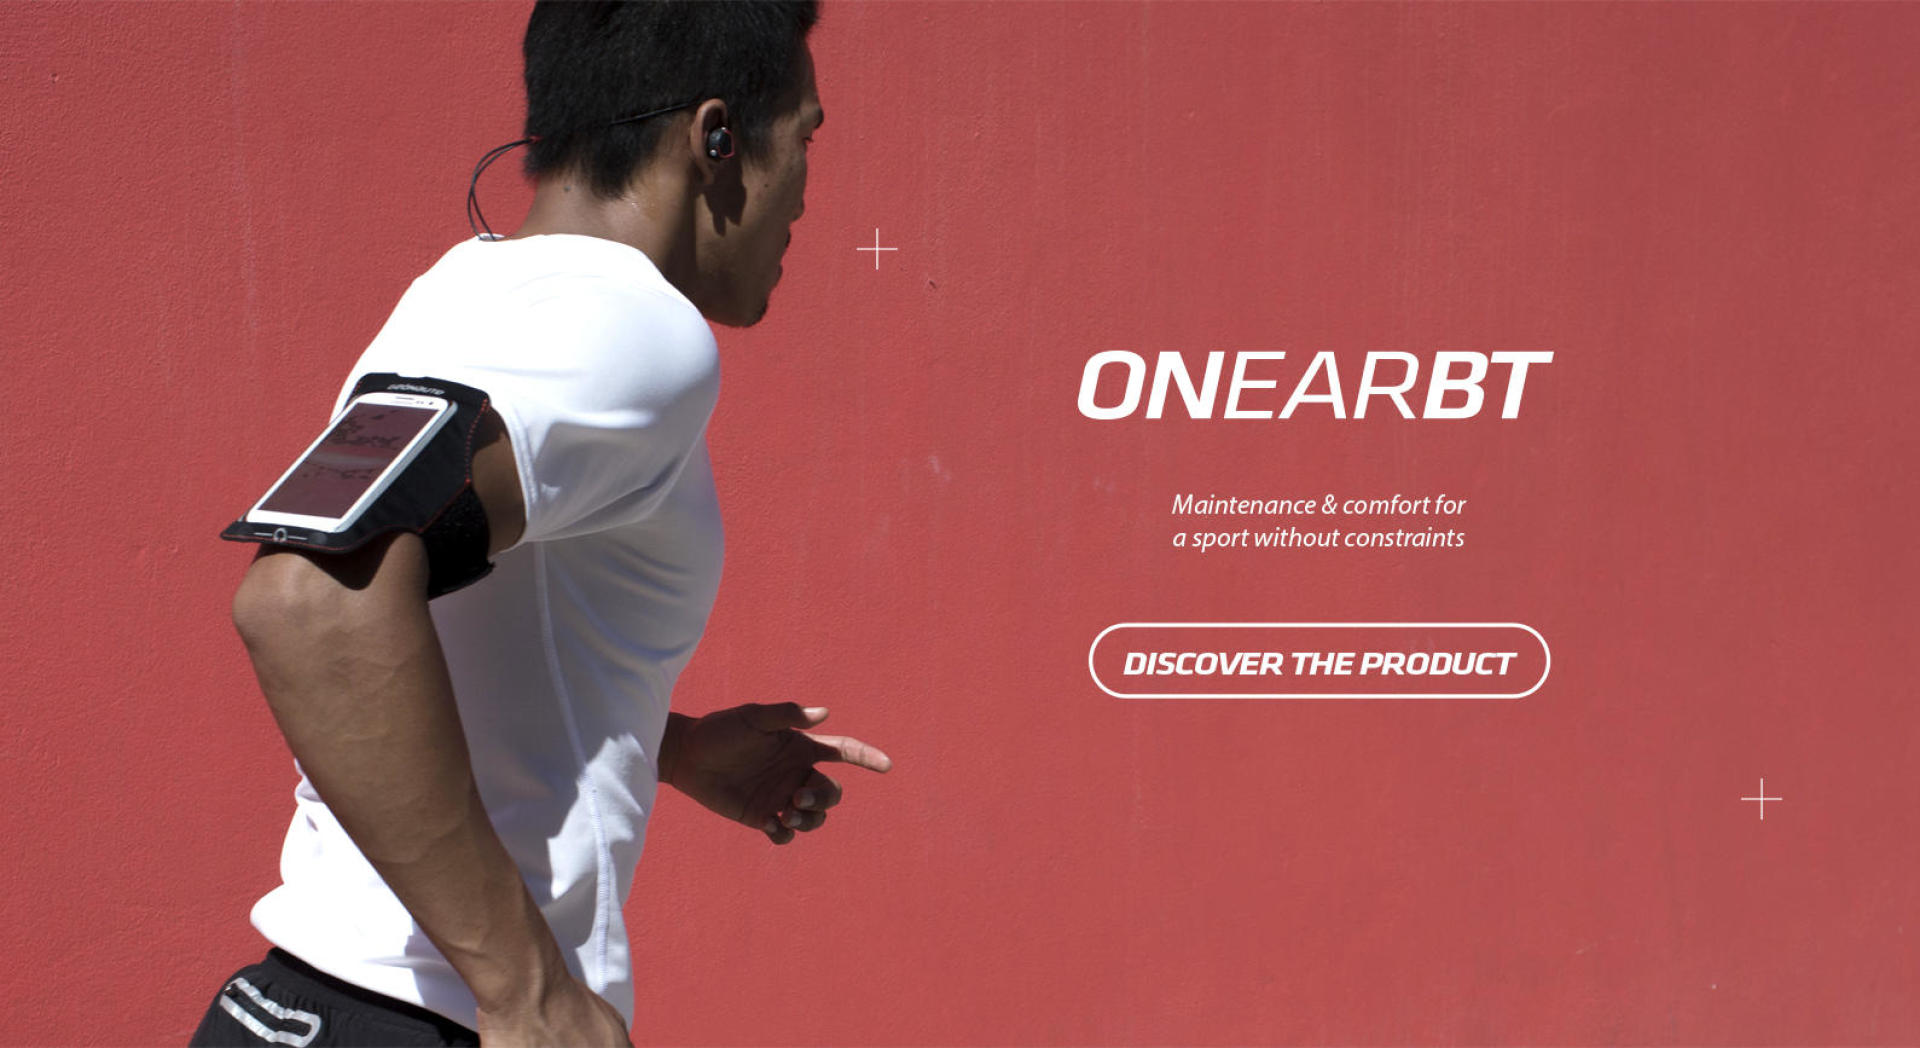 Discover our sports earphones ONear Bluetooth